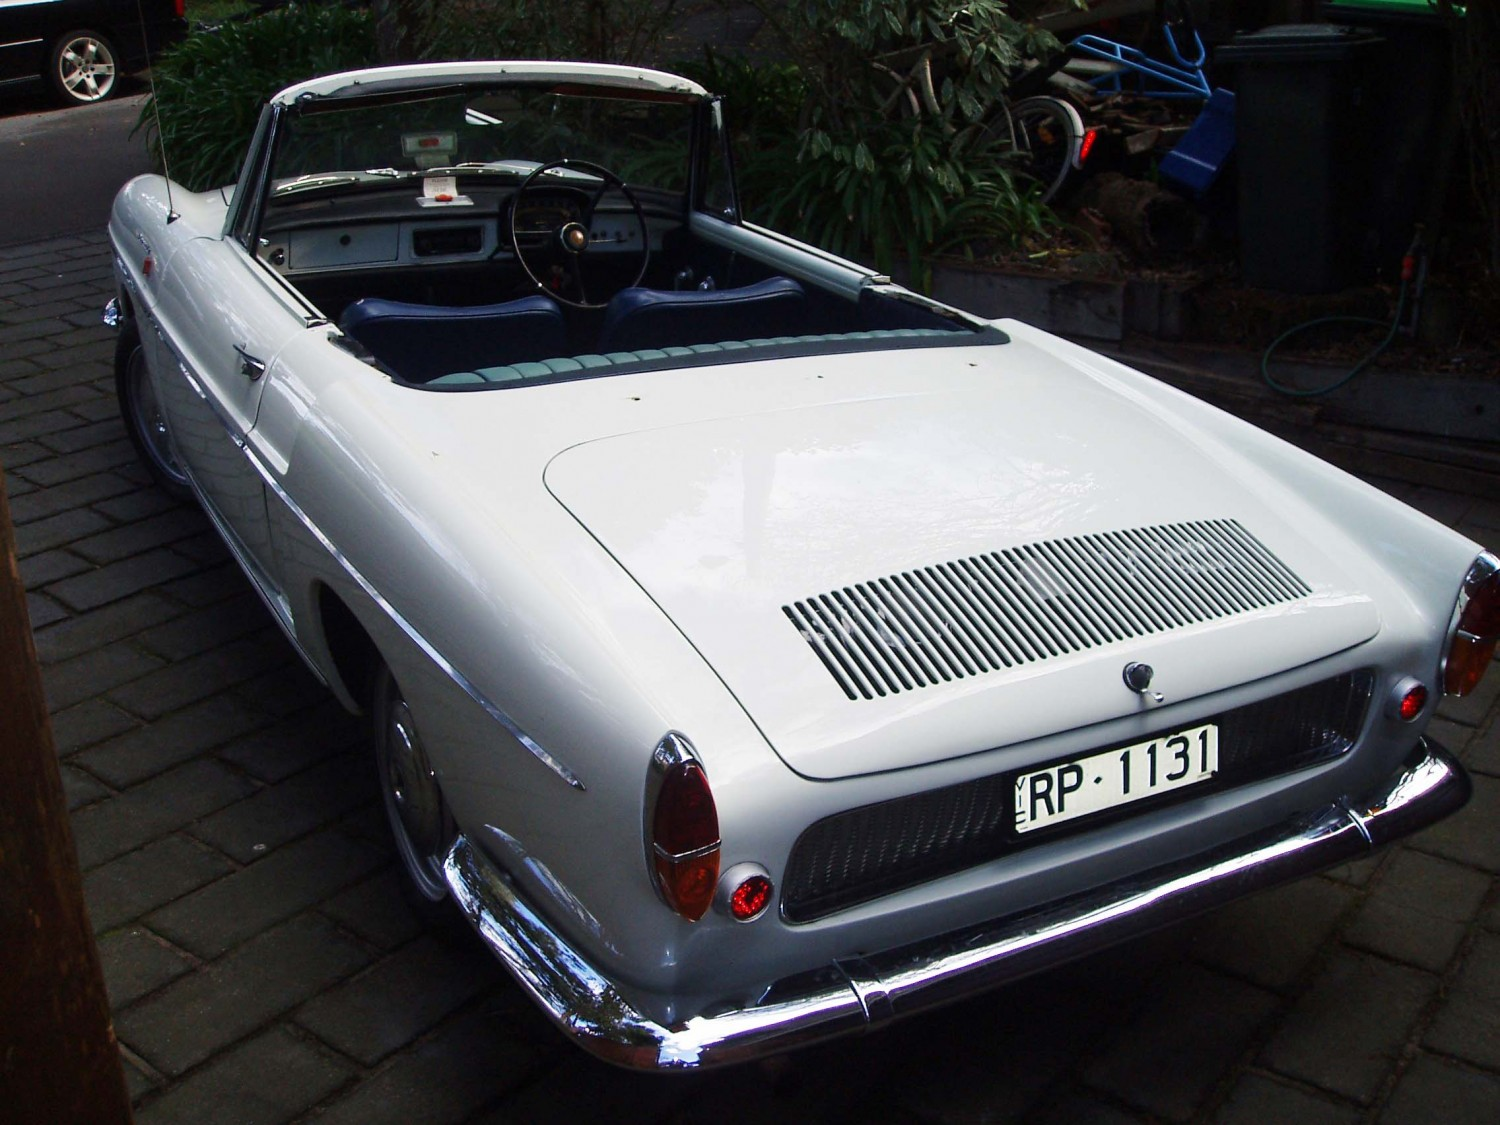 1963 Renault Caravelle - Caravelle - Shannons Club